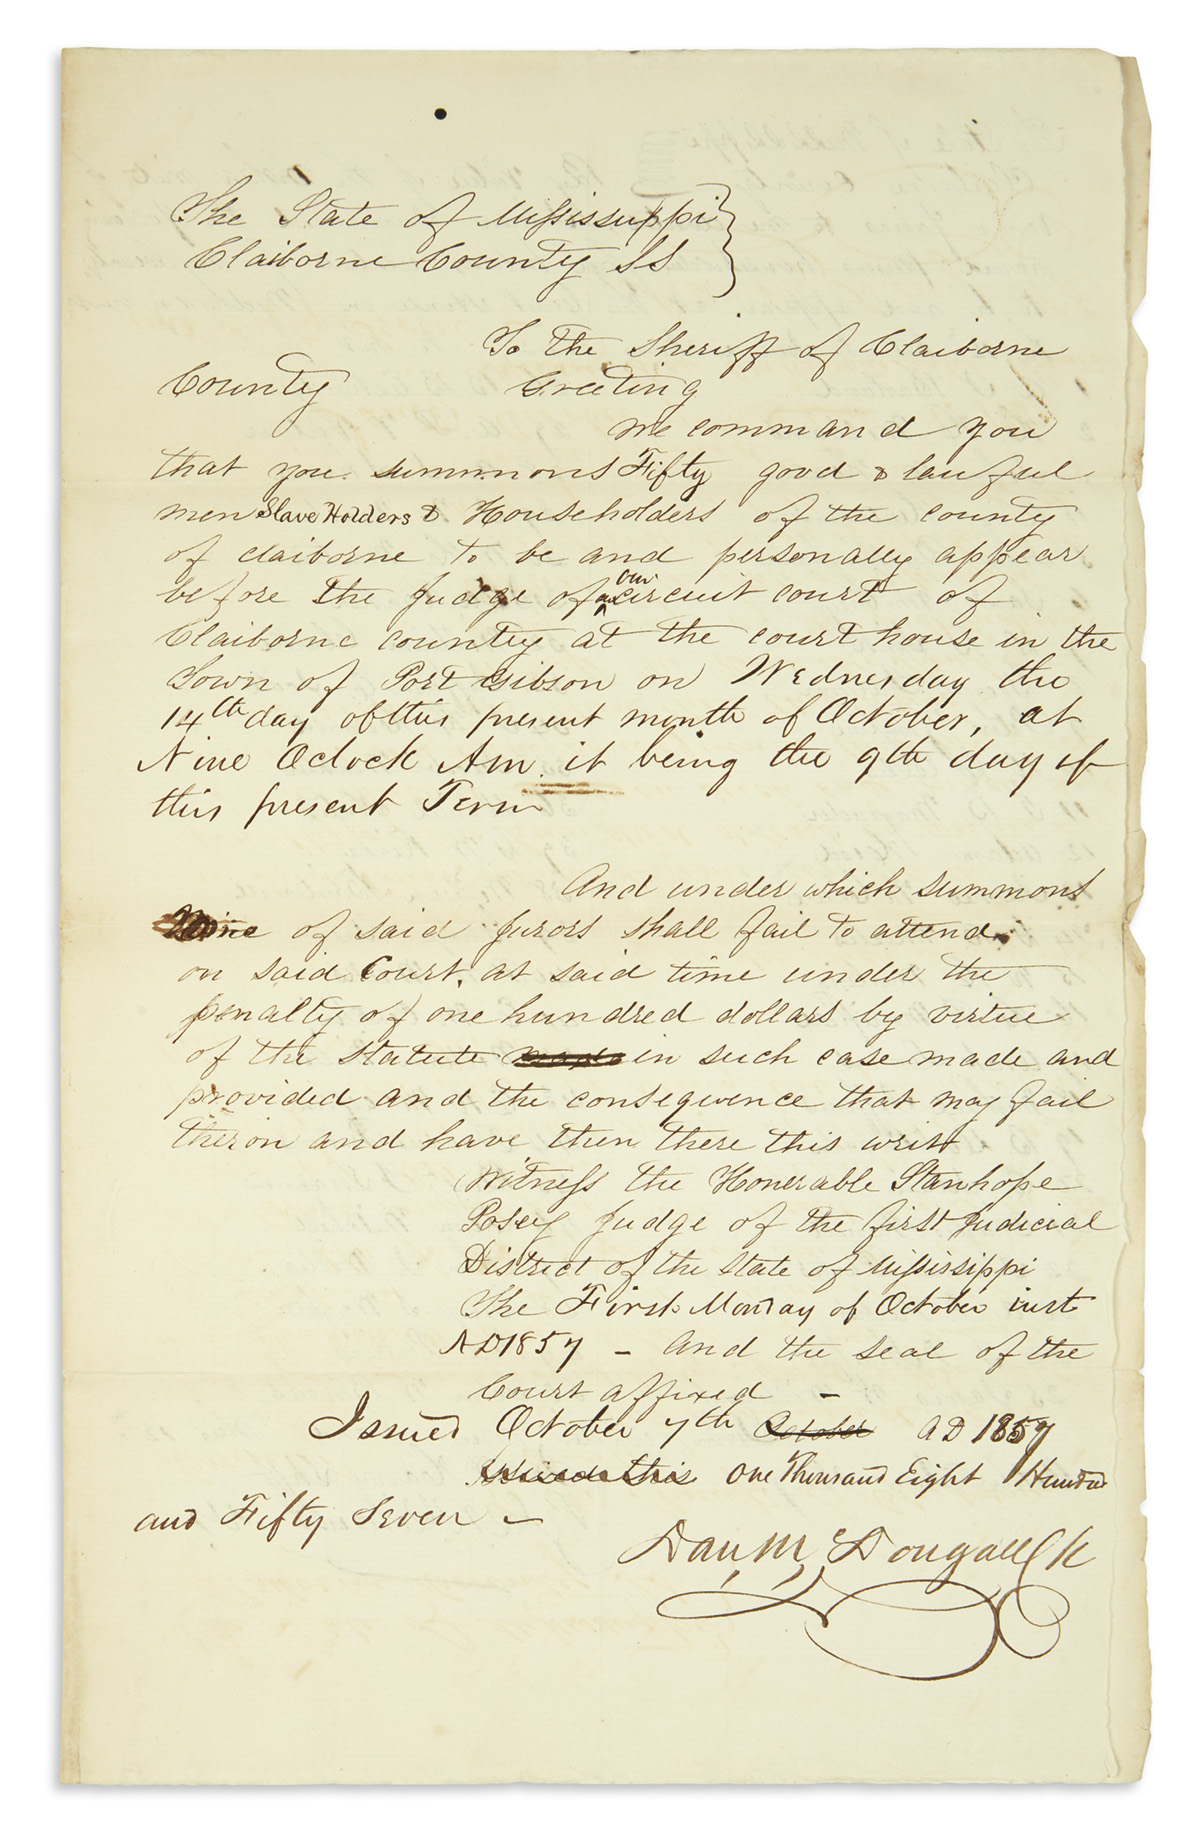 (SLAVERY-AND-ABOLITION)-Summons-for-a-jury-of-50-slave-owners-to-rule-in-a-Mississippi-case-against-a-slave